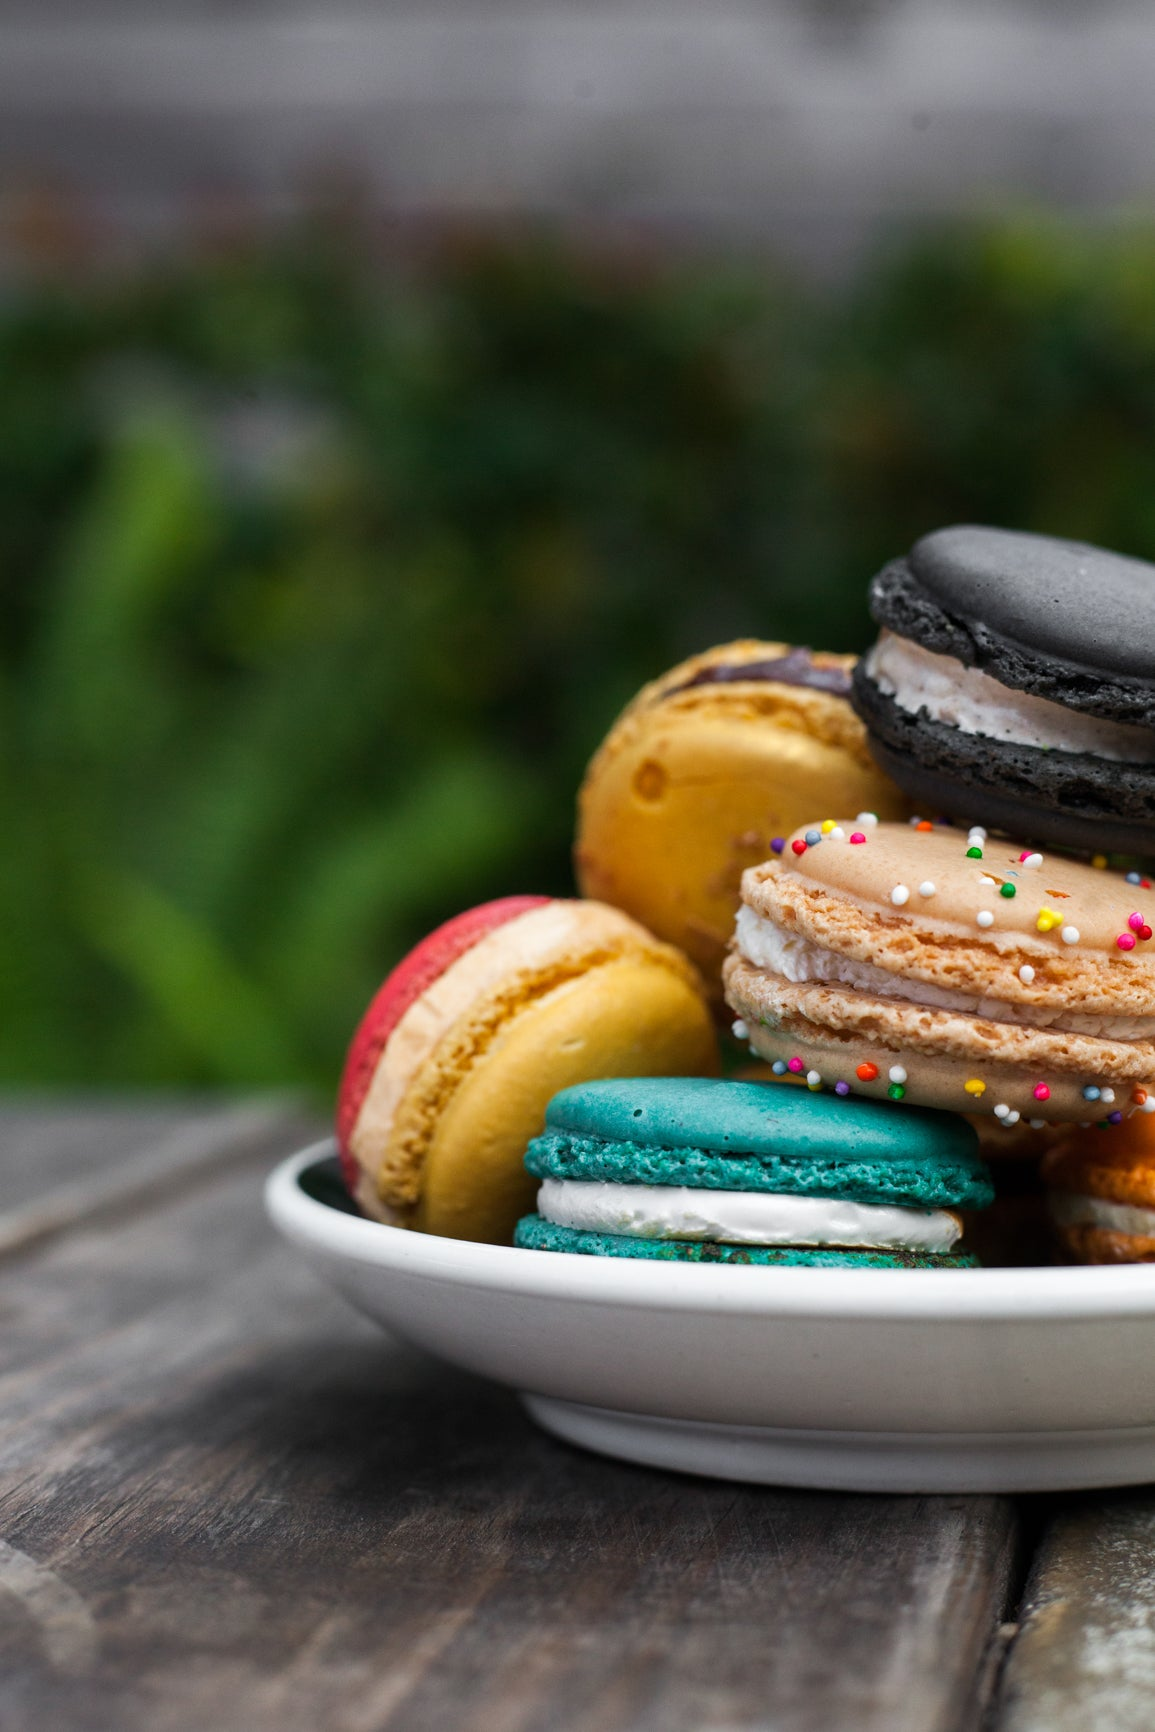 Order French Macarons Online